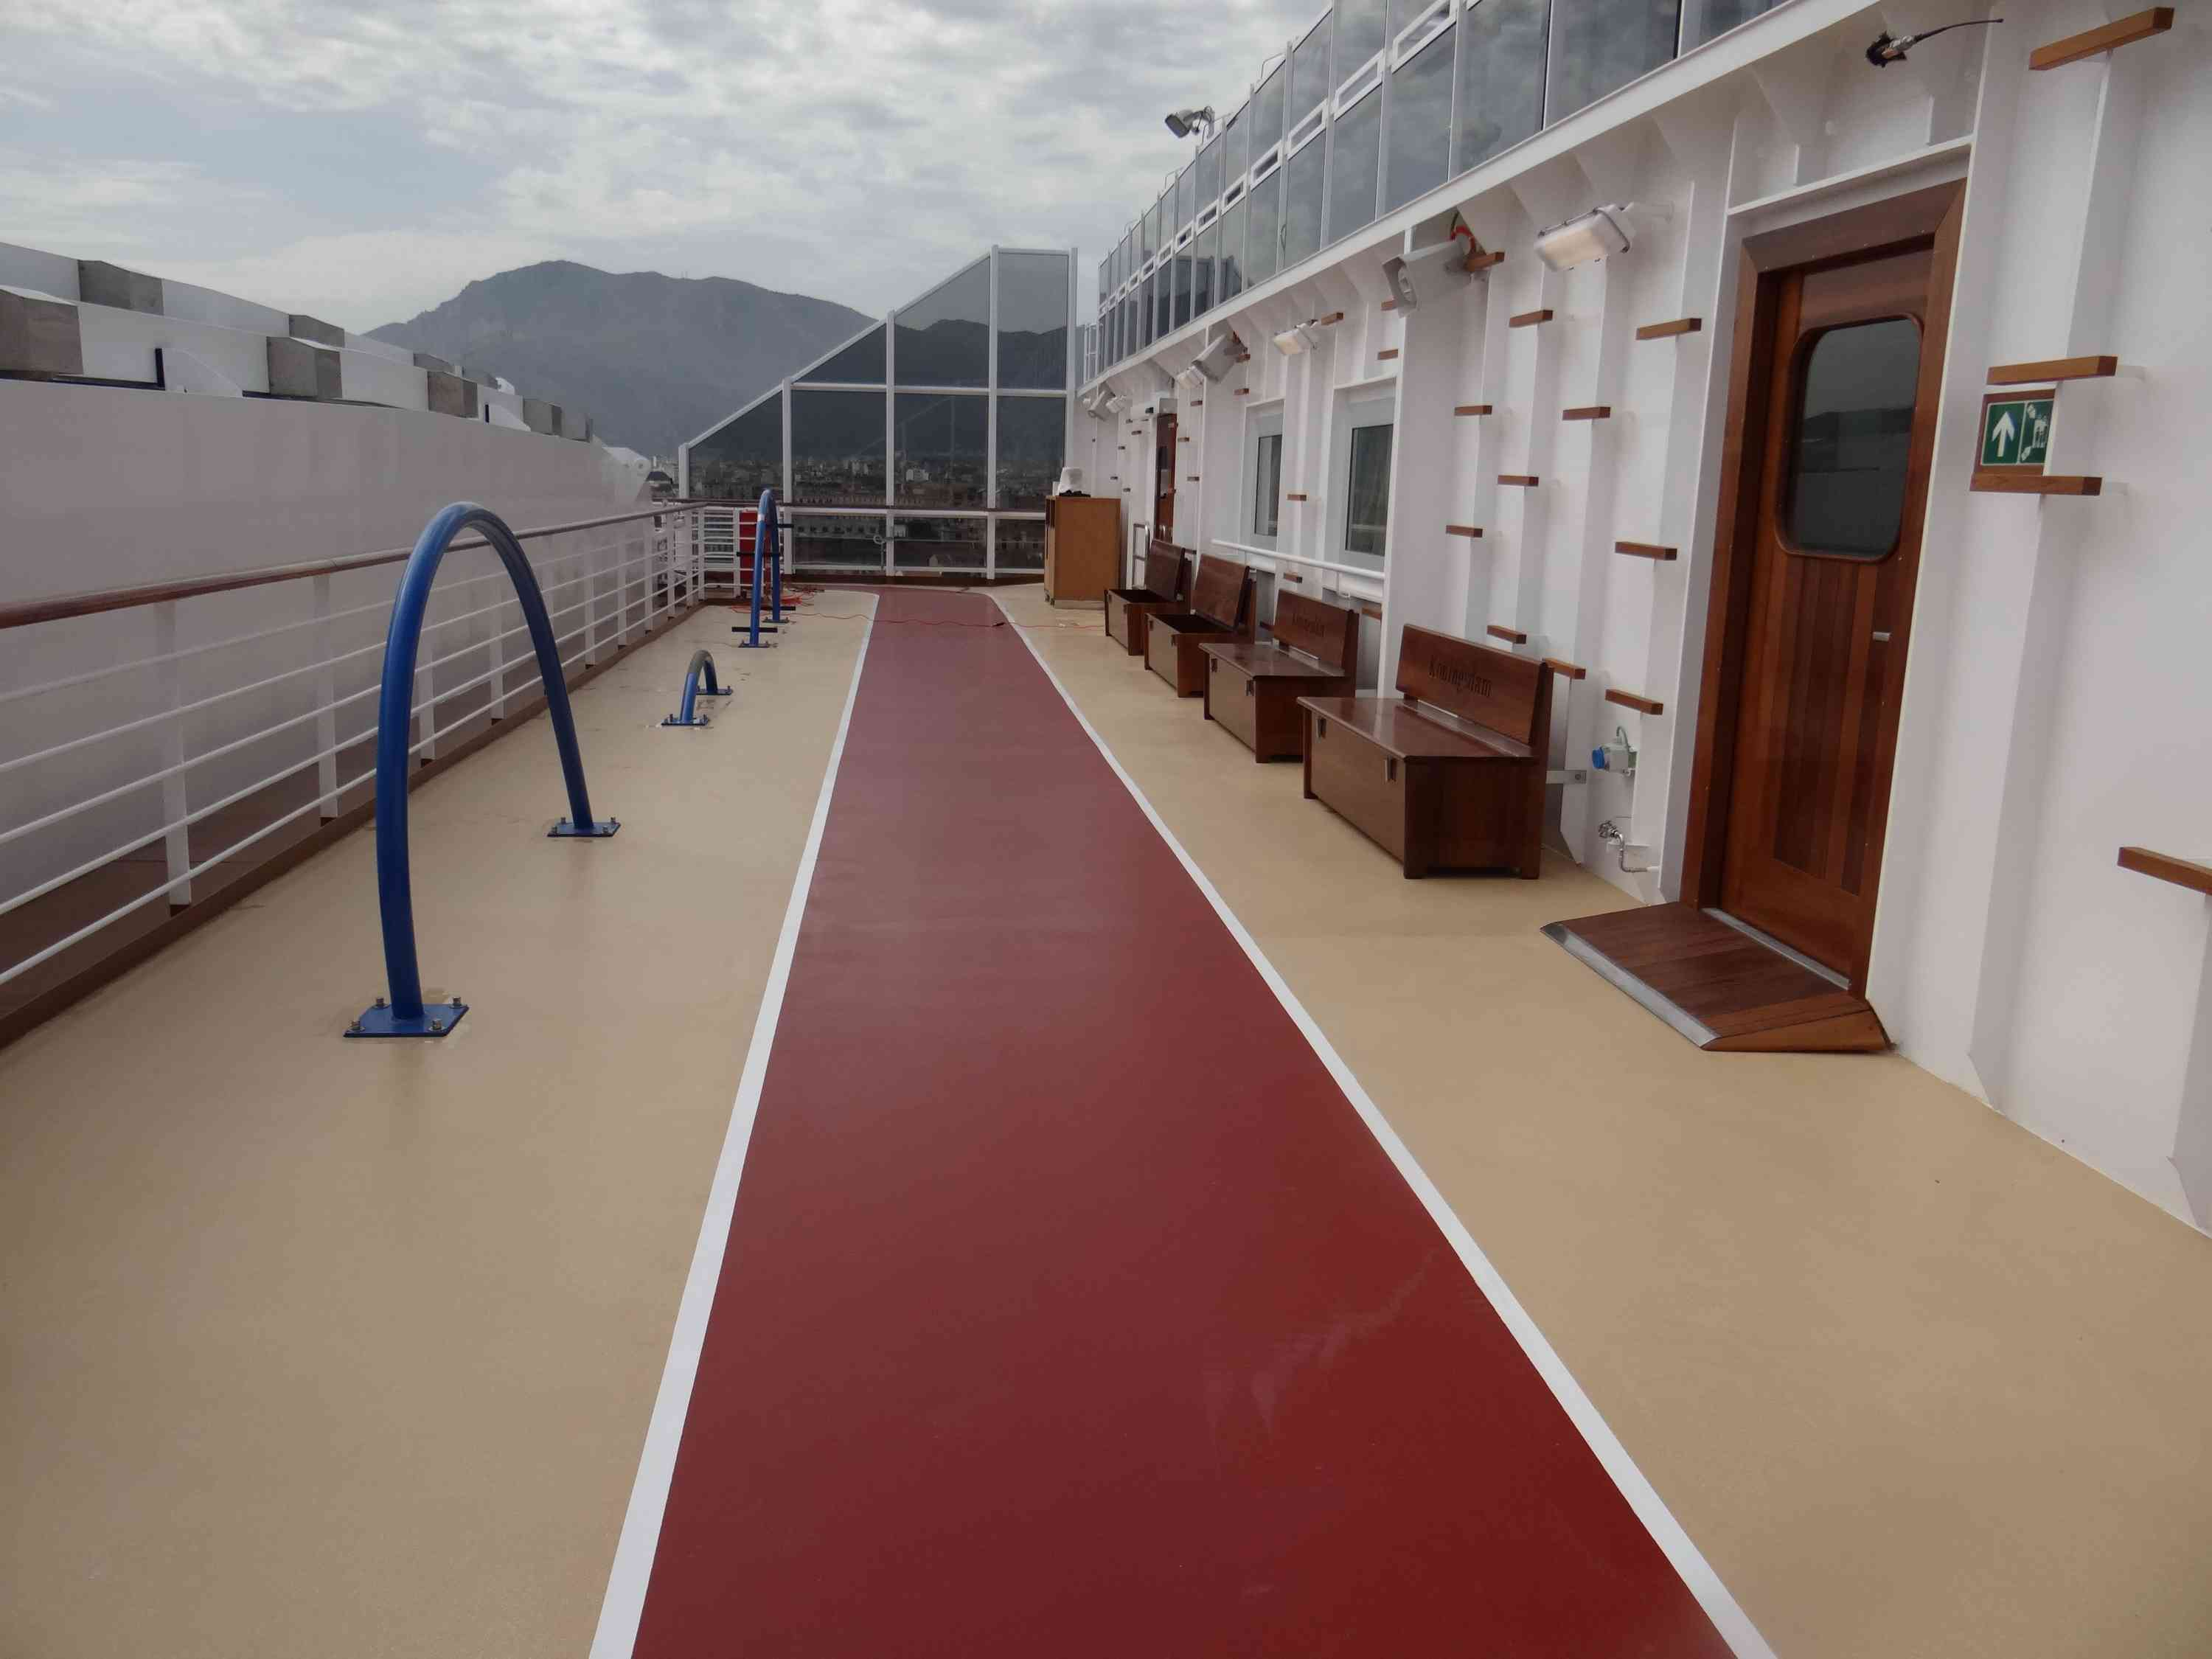 Outdoor jogging track on the Holland America Koningsdam cruise ship